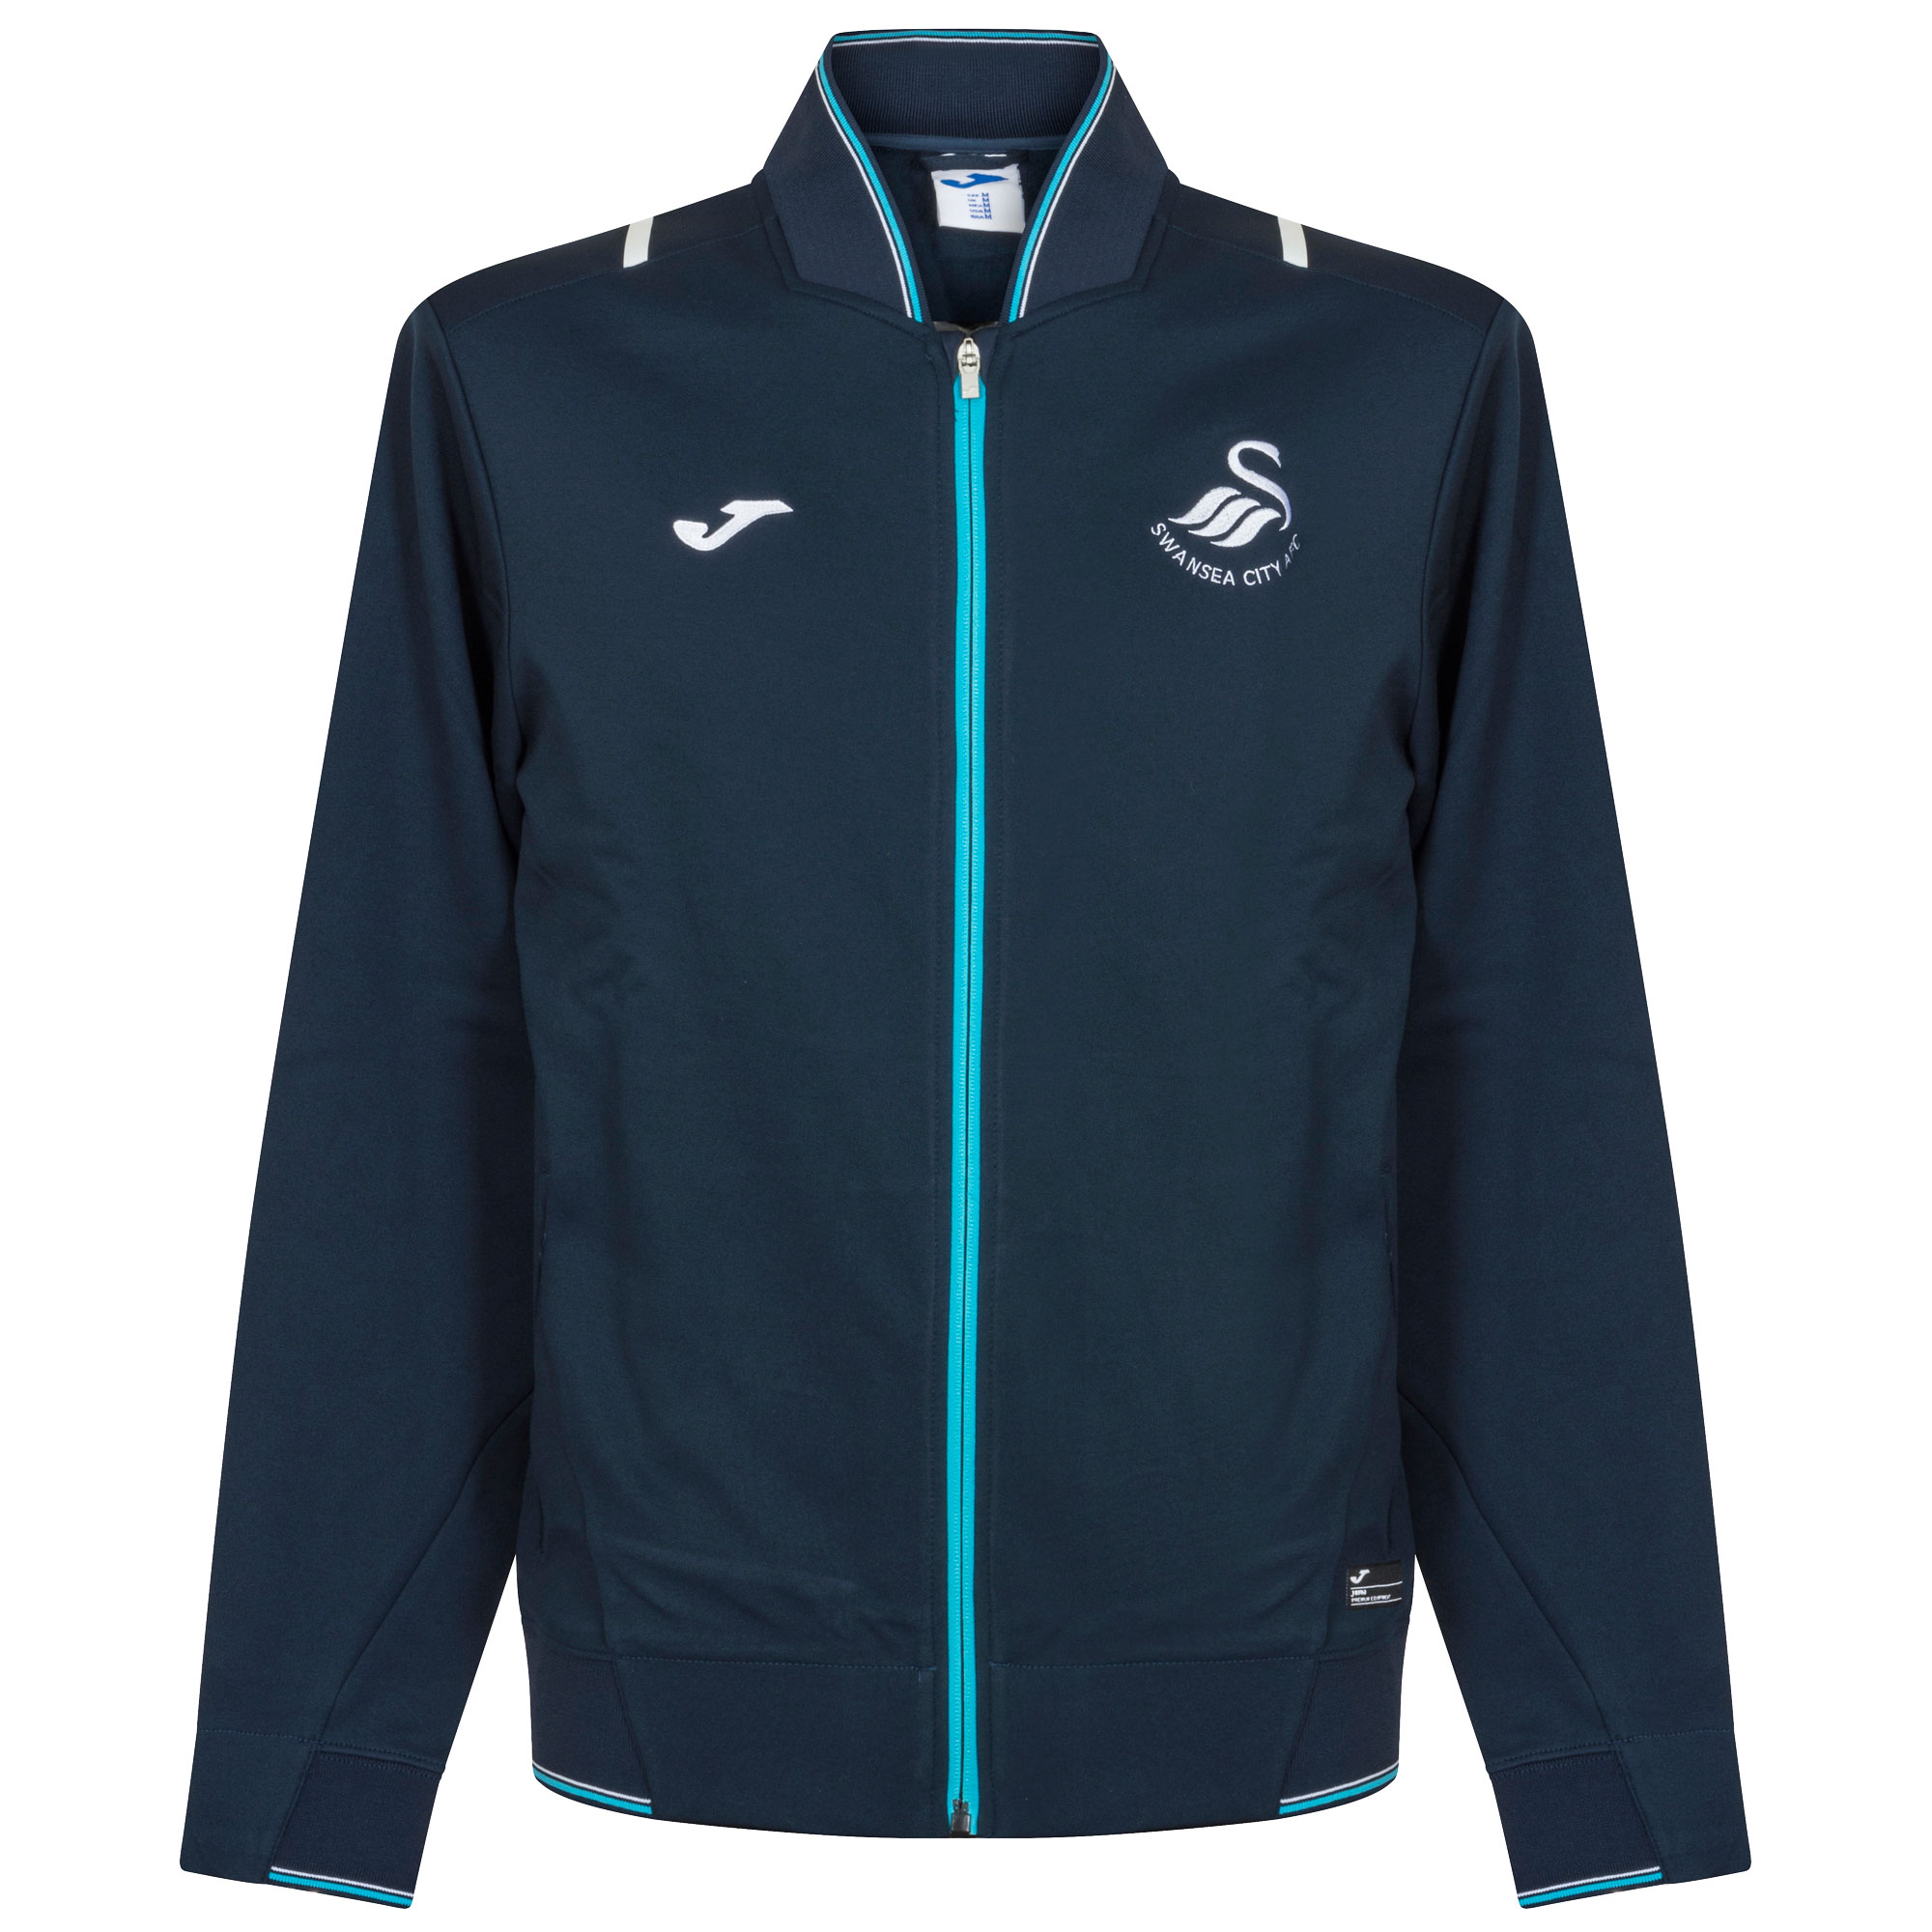 Swansea Travel Jacket 2016 / 2017 - Navy - S